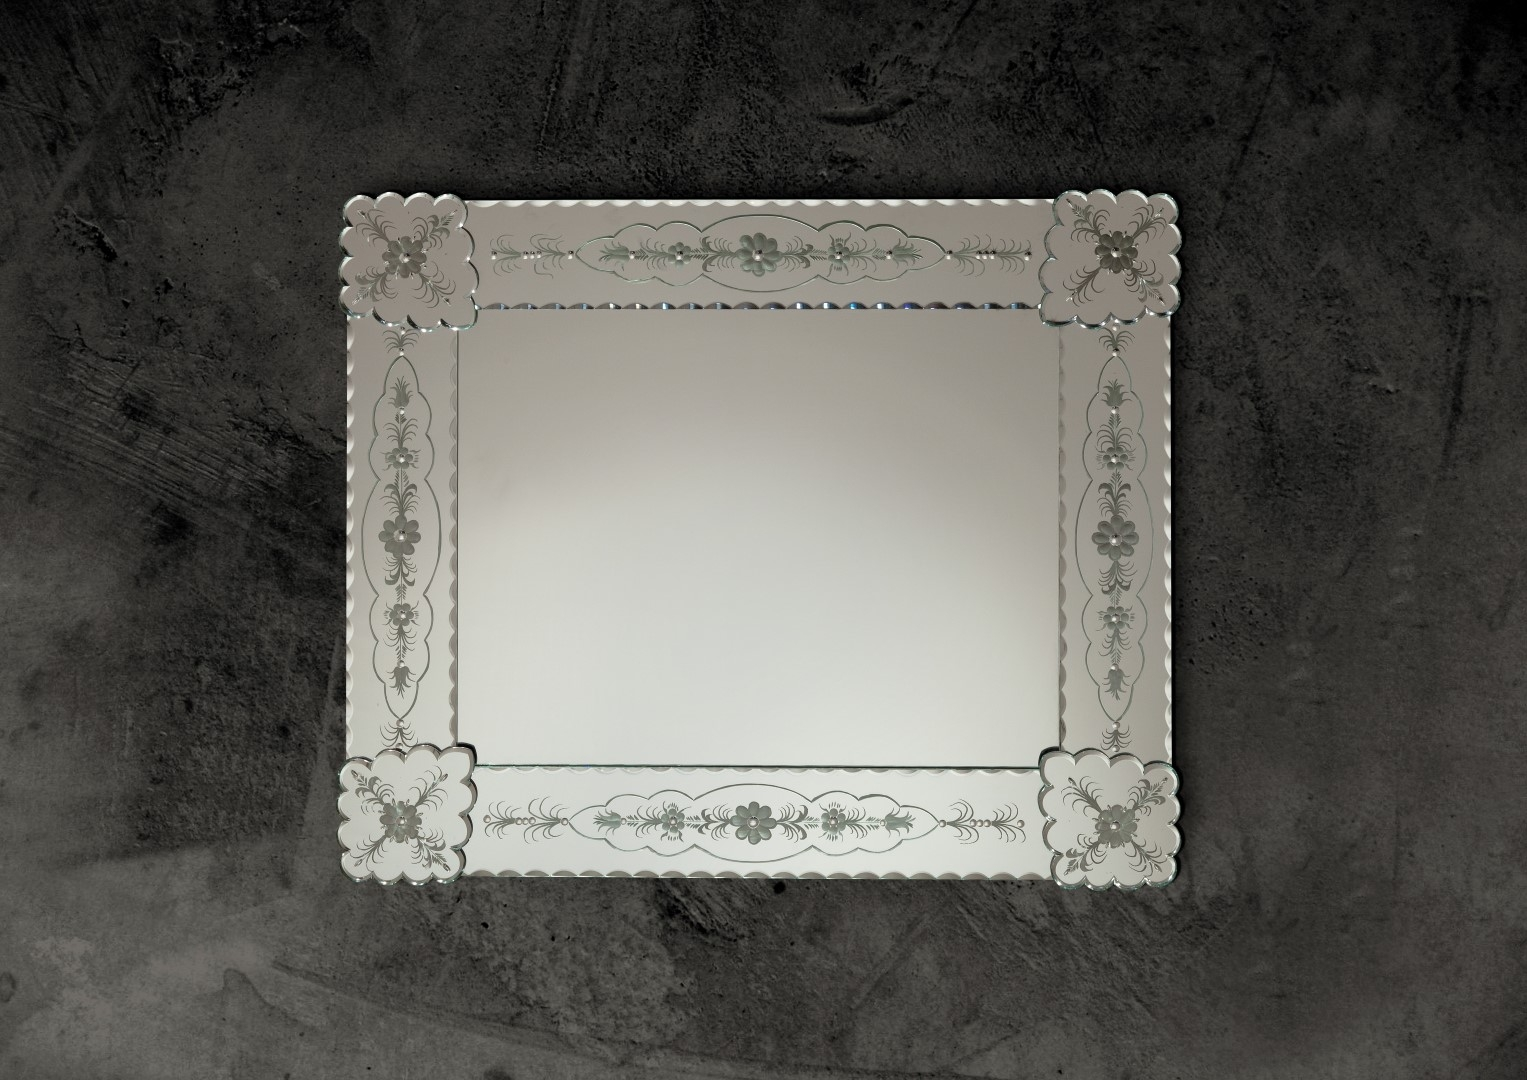 Eolica Venetian Mirror Engraved Flowers With Regard To Square Venetian Mirror (Image 7 of 15)